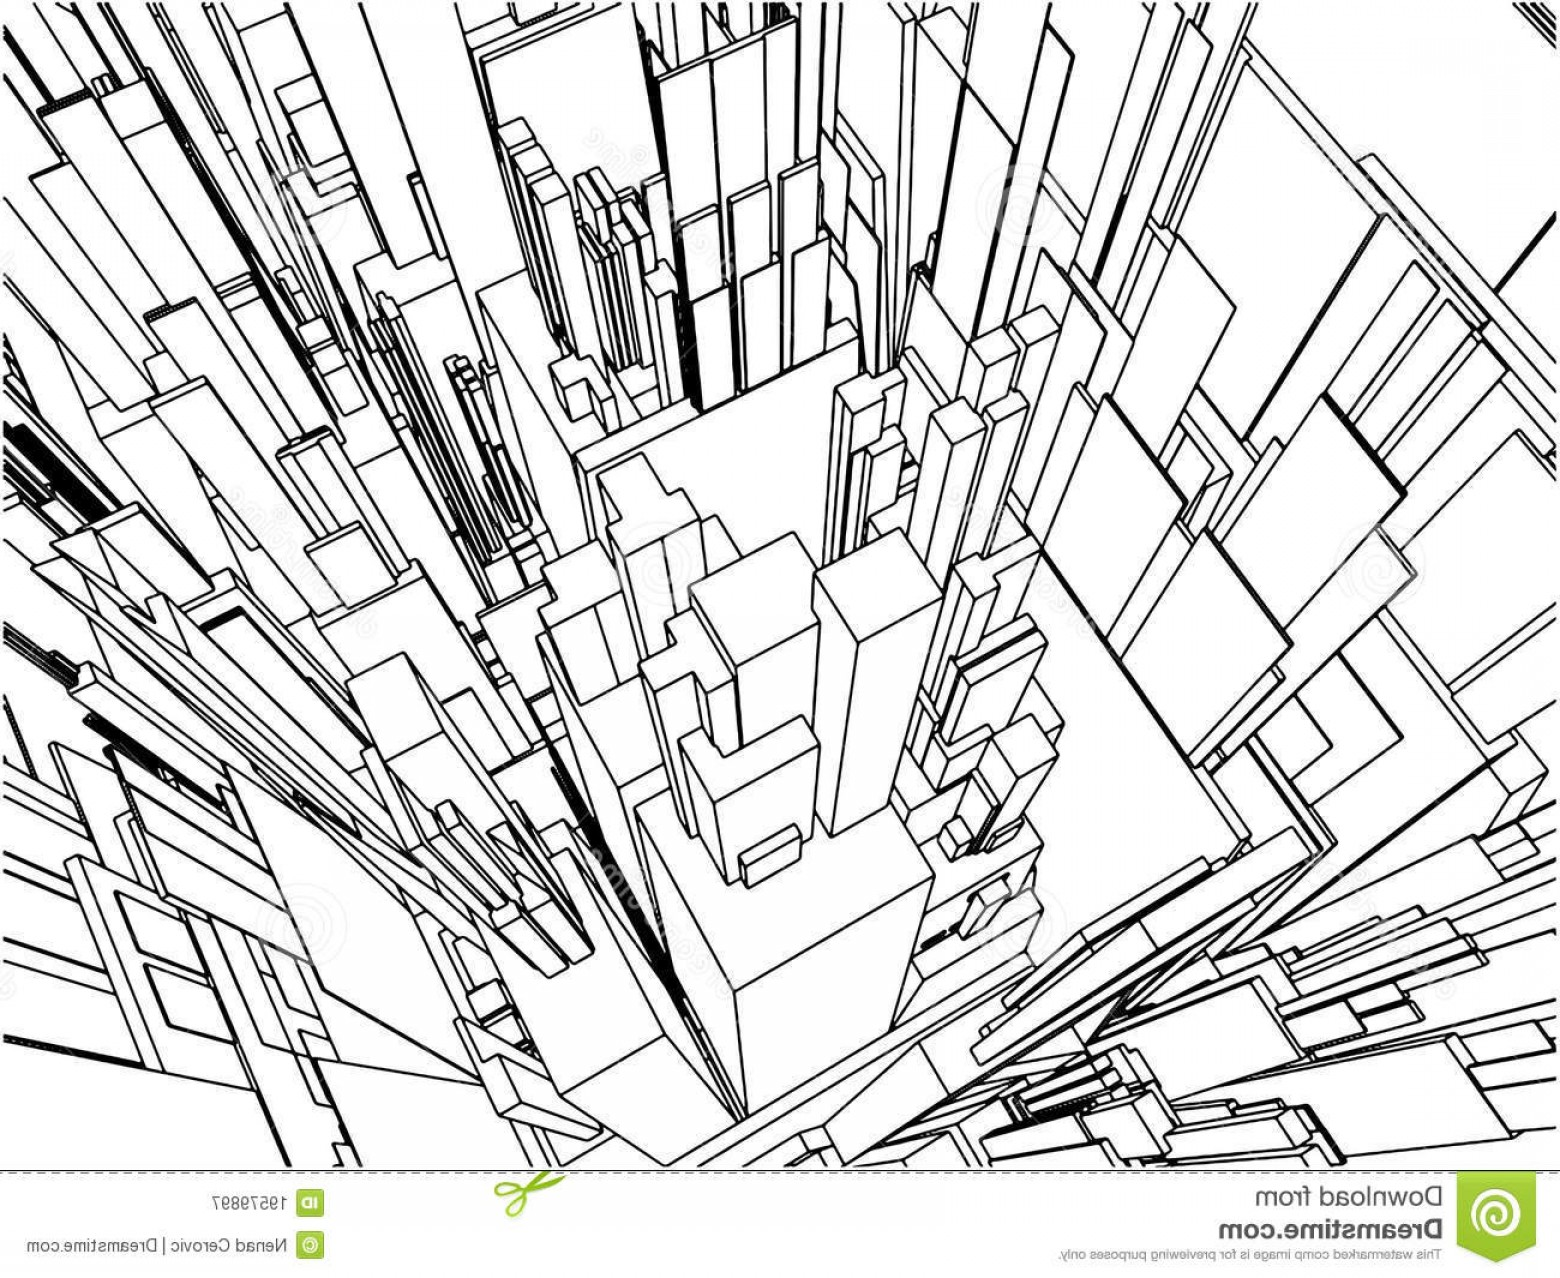 City Building Vector Free Download: Royalty Free Stock Photography Abstract Urban City Building Vector Image